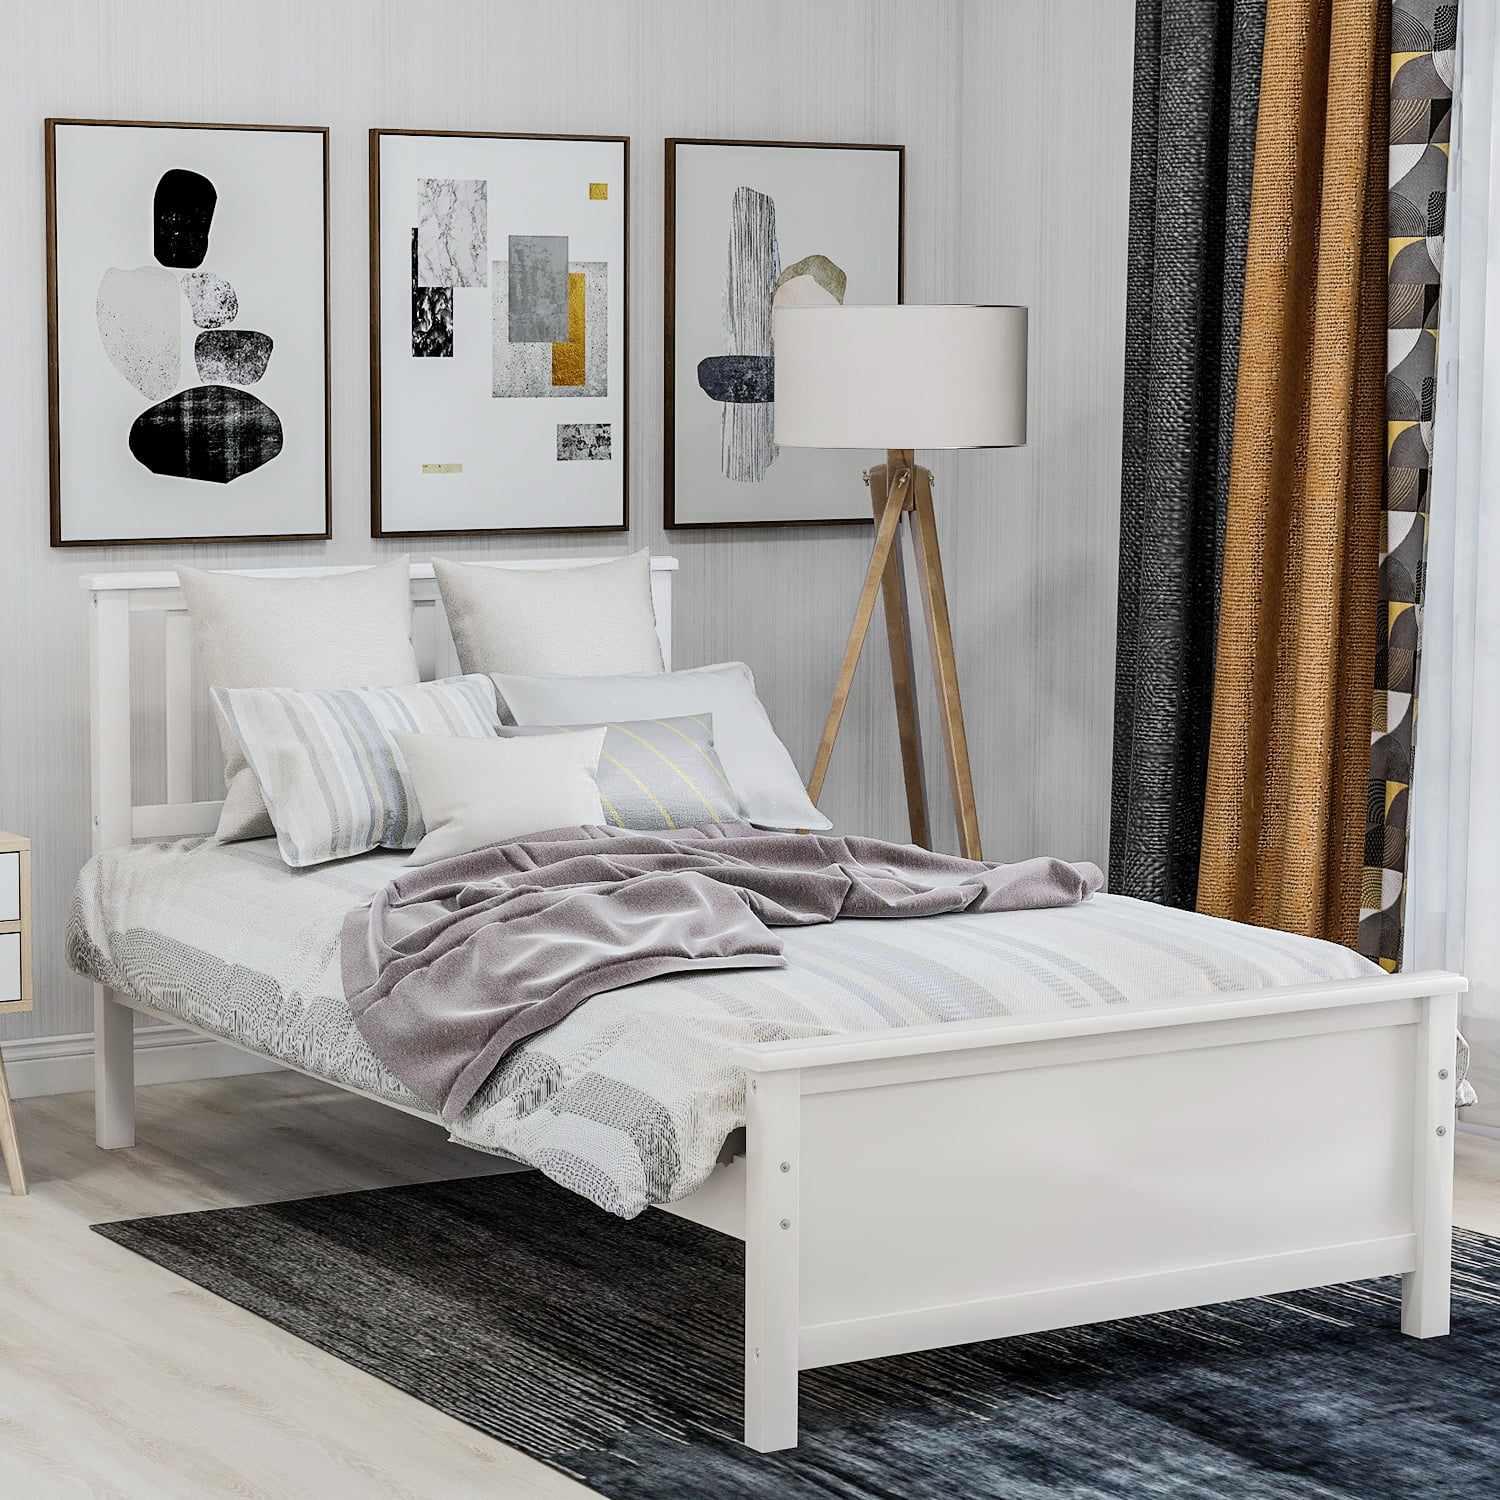 Twin Bed Frame With Headboard Solid Wood Twin Platform Bed Frame W Strong Wooden Slat No Box Spring Needed Great For Boys Girls Kids Teens And Adults Modern Bedroom Furniture White W7384